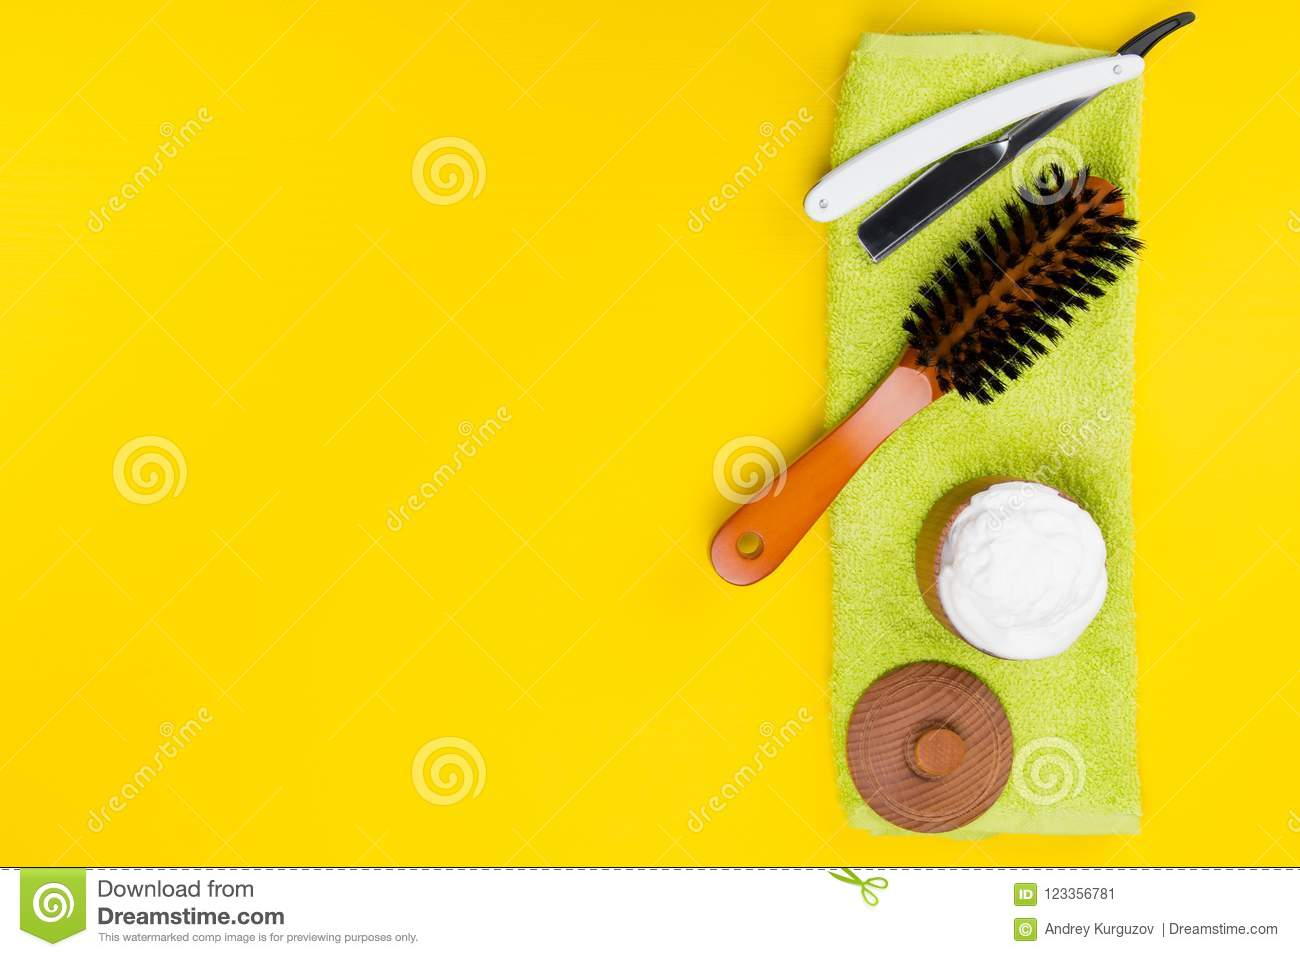 on a light yellow background, lie objects to create. beautiful beards, scissors, shaving foam and brush.